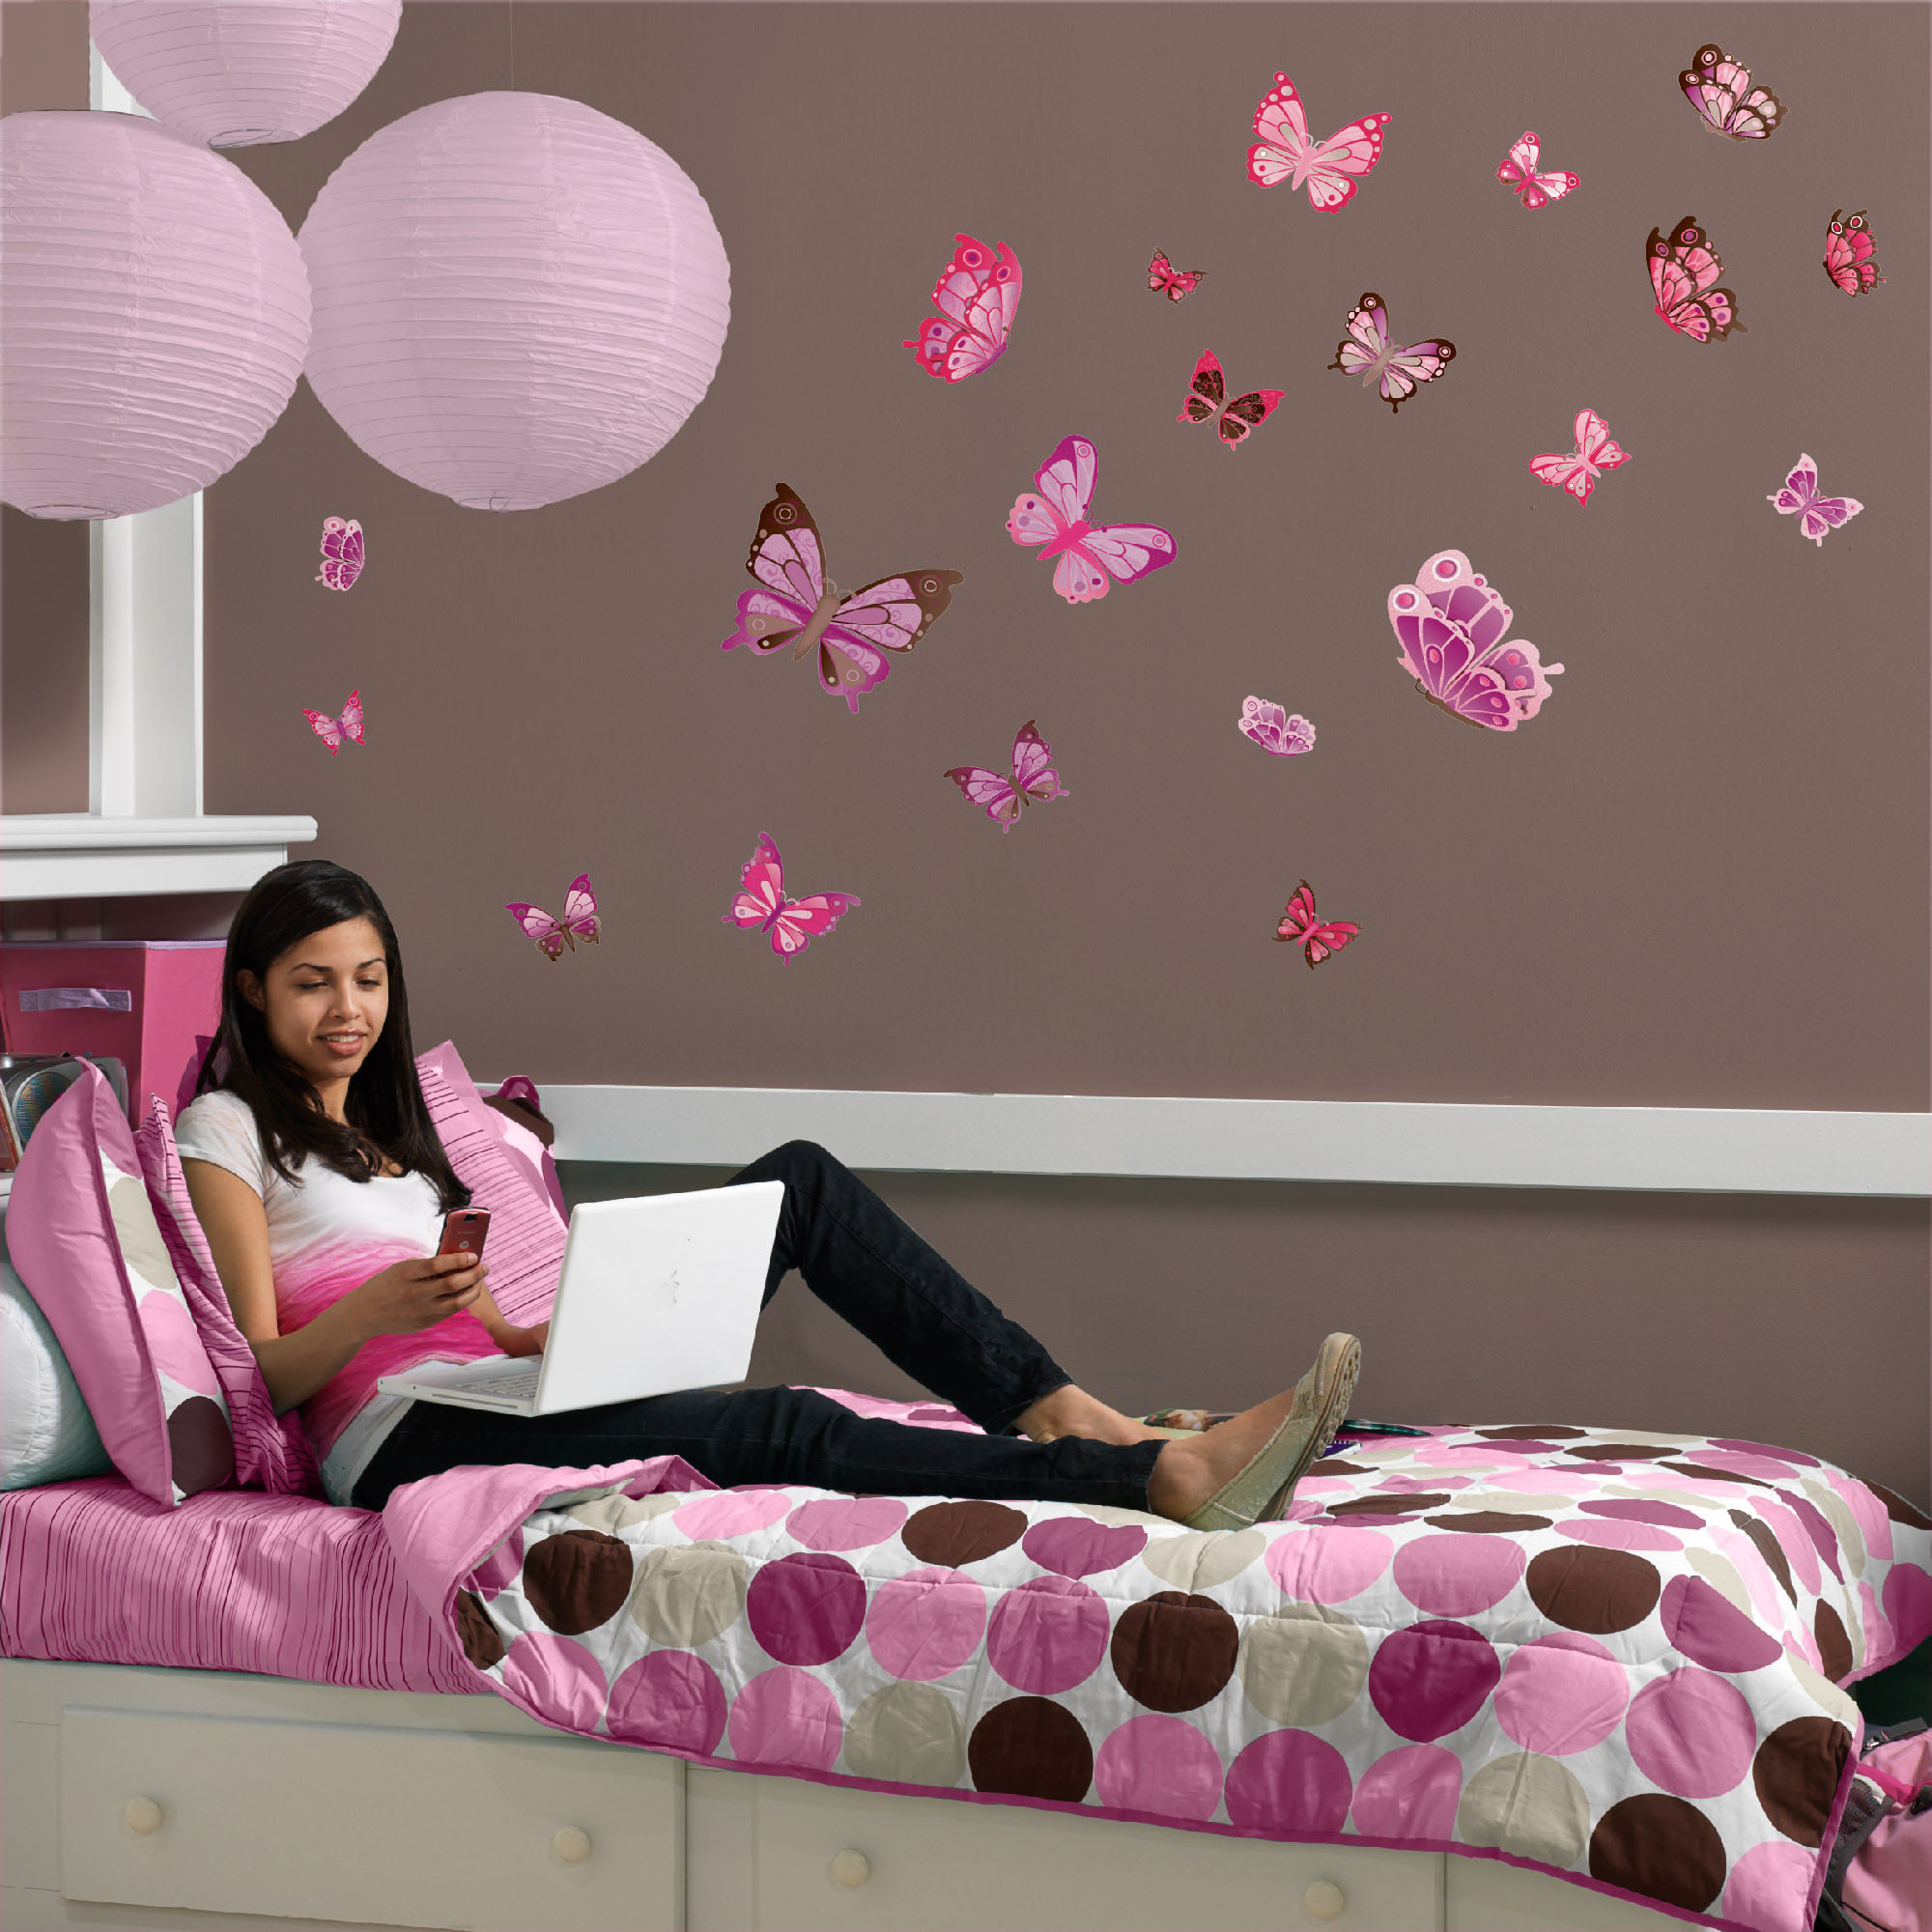 Paint Ideas For Teenage Bedroom Modern Bedroom Design Ideas 2014 Bedroom Paint Ideas Grey Jcpenney Bedroom Sets: Teens Can Make Their Mark Without Leaving A Mark With New